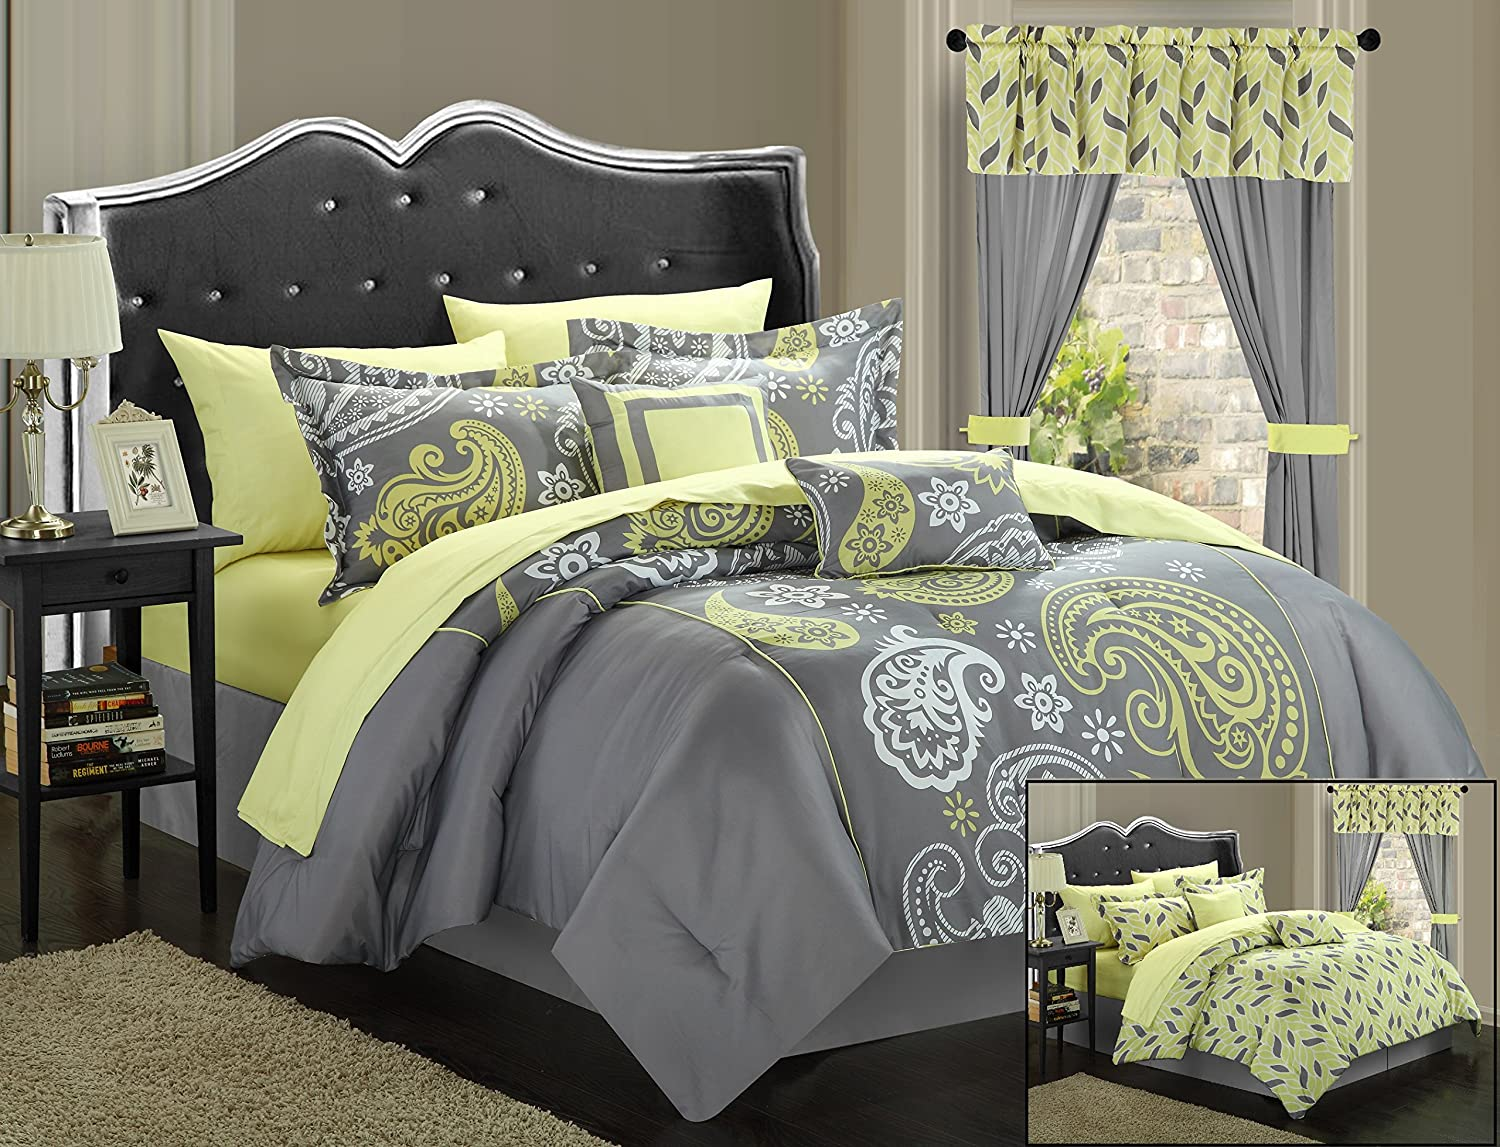 Chic Home Olivia 20-Piece Comforter Set Reversible Paisley Print Complete Bed in a Bag with Sheet Set